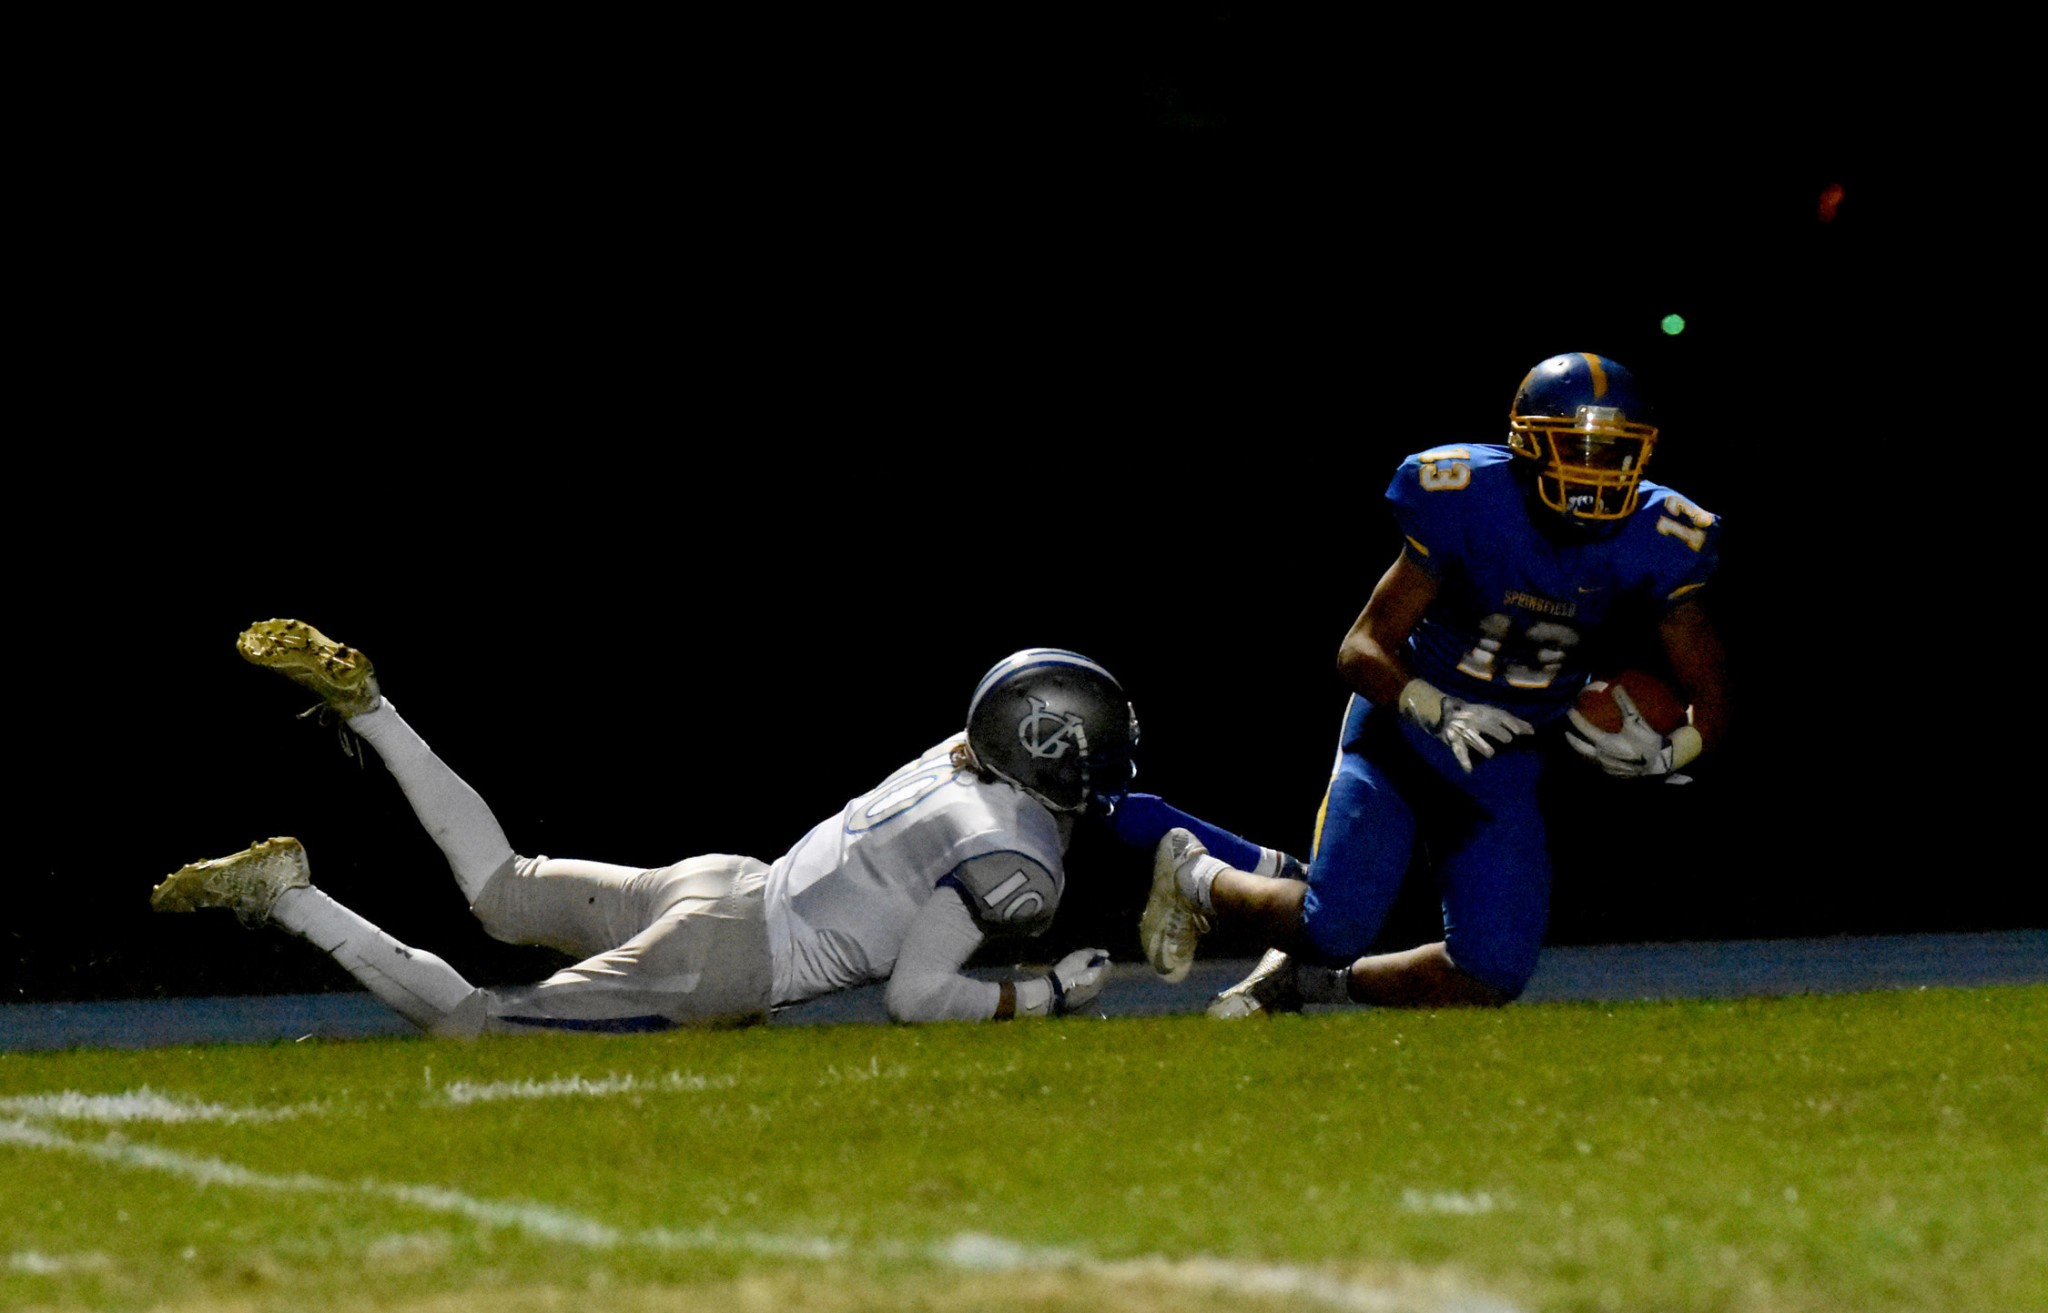 Great Valley's Brendan O'Donnell, left, provides a shoestring stop of Springfield's Ja'Den McKenzie at the one-yard line. McKenzie would score on the next play in a 24-10 win by the Cougars. (Digital First Media/Anne Neborak)